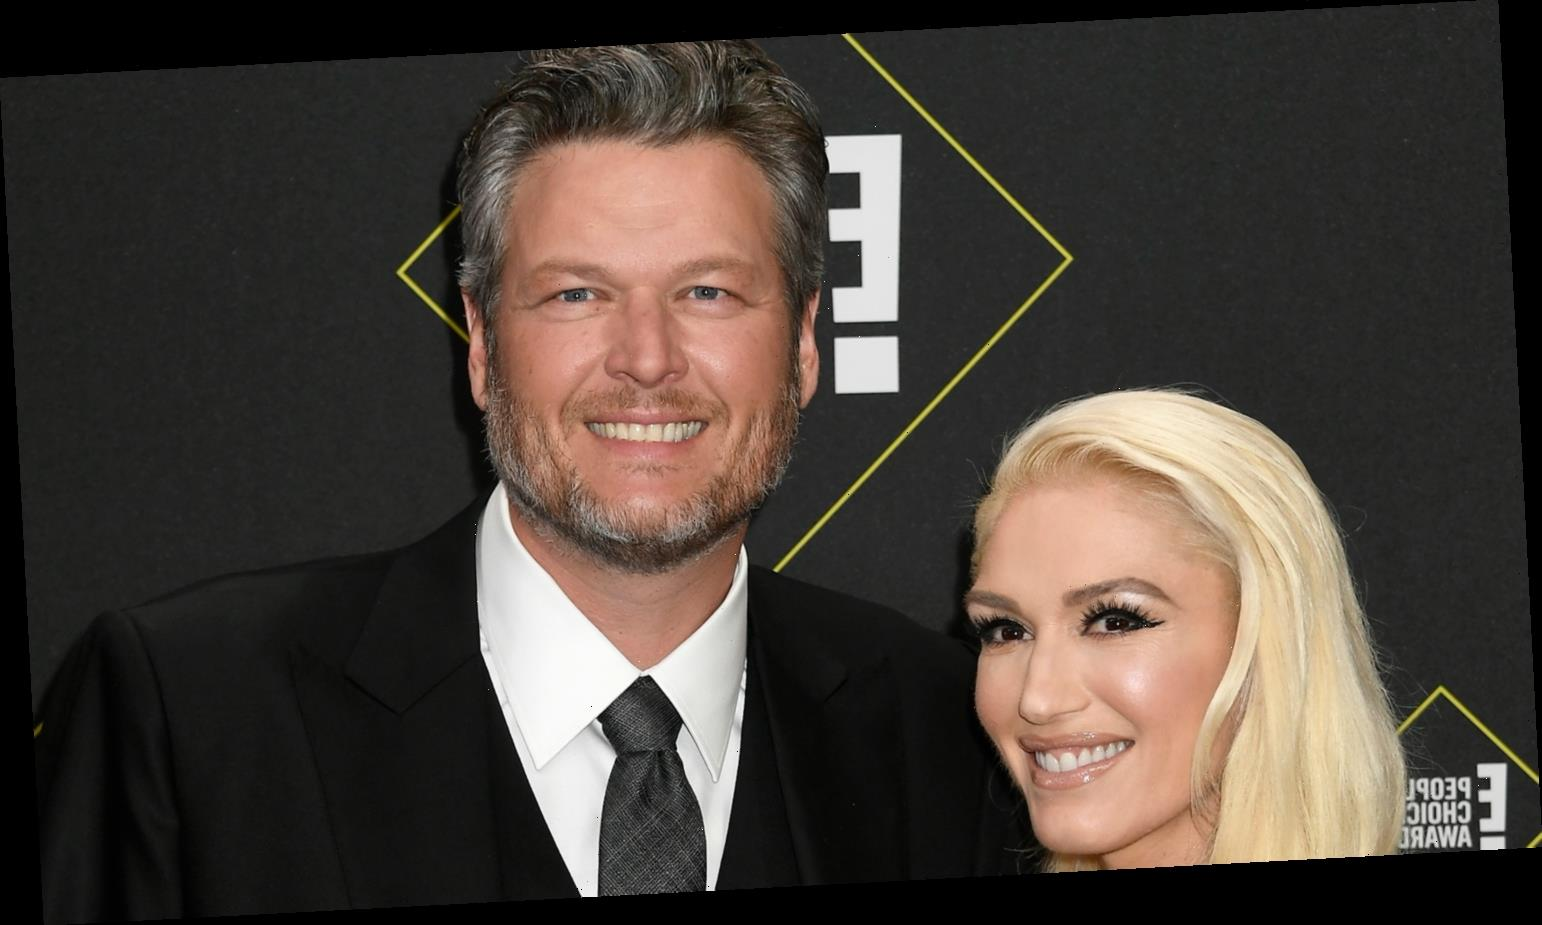 Blake Shelton Gwen Stefani Nobody But You Stream Lyrics Download Listen Top News Wood I don't wanna go down any other road now i don't wanna love nobody but you looking in your eyes now, if i had to die now i don't wanna love nobody but you. top news wood